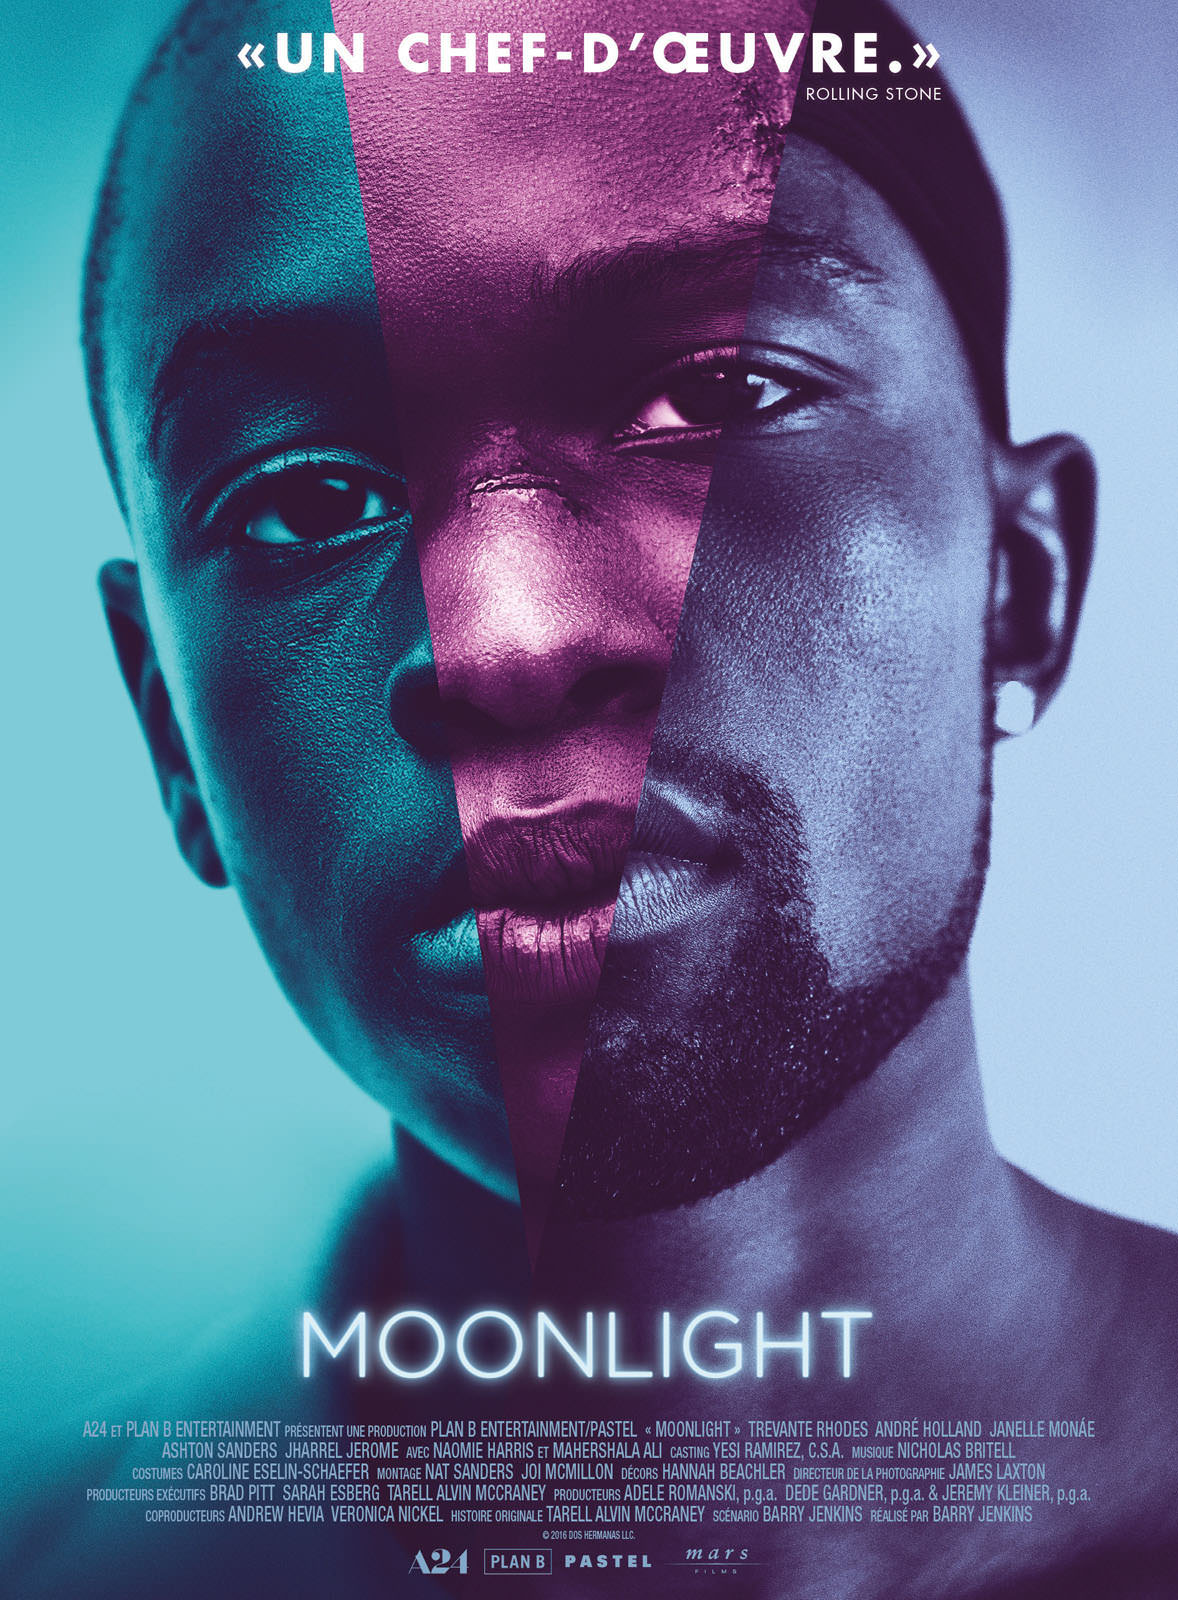 Blog-Mode-And-The-City-Lifestyle-Cinq-Petites-Choses-209-Moonlight